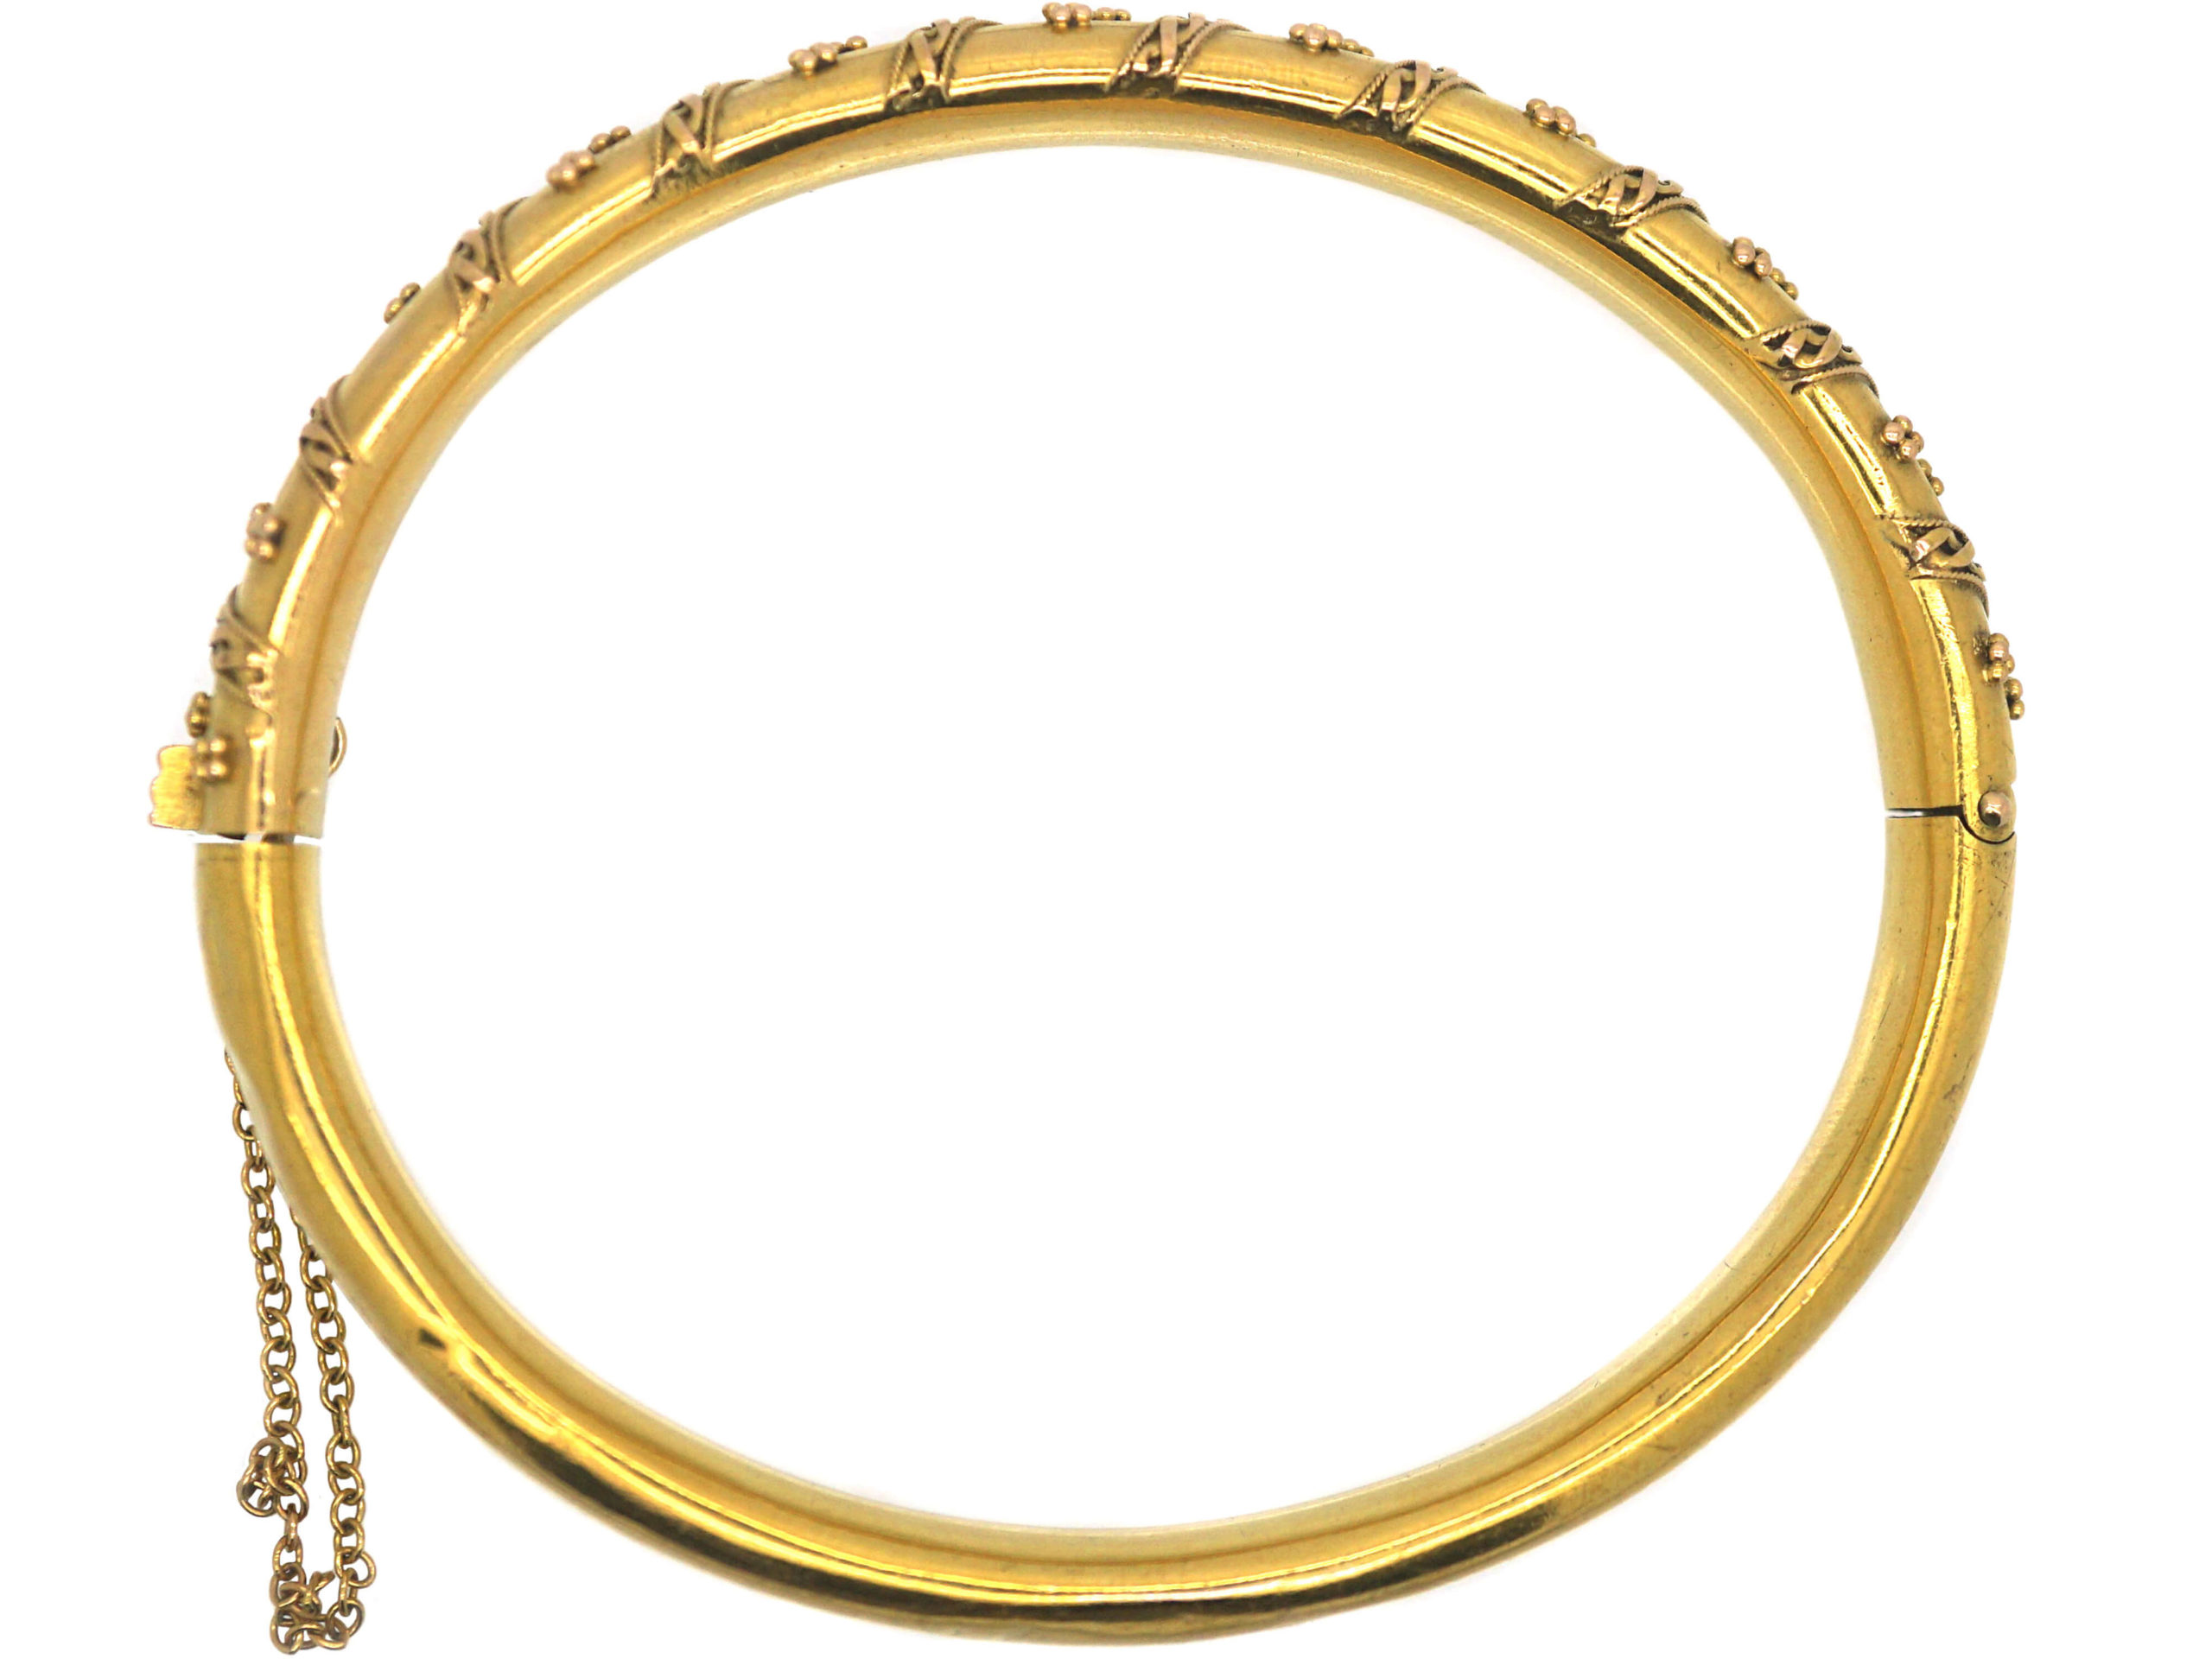 Victorian 15ct Gold Bangle with Applied Decoration